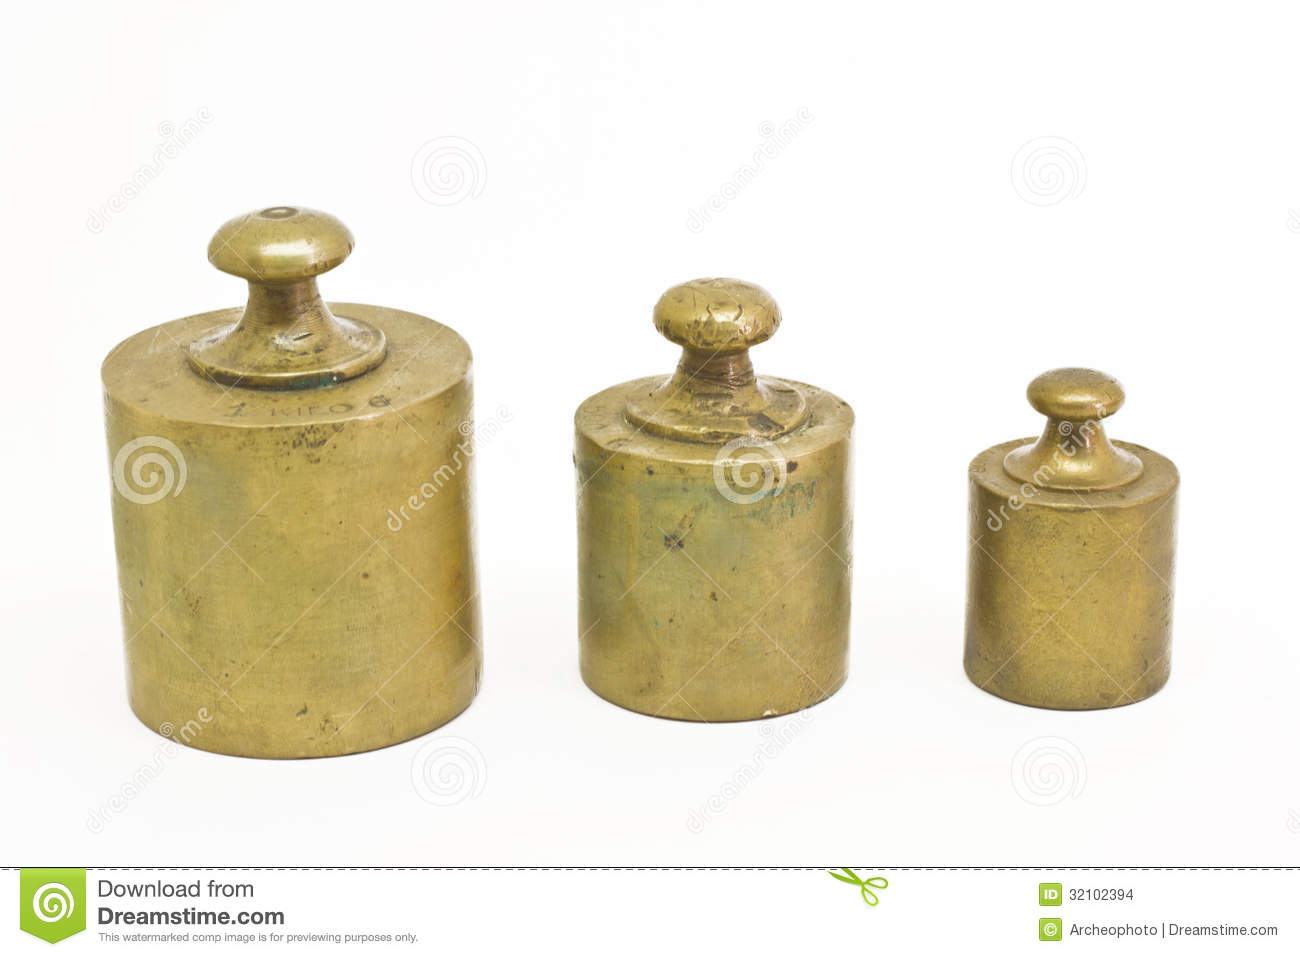 Scale Calibration Weights >> Antique Weights Stock Images - Image: 32102394